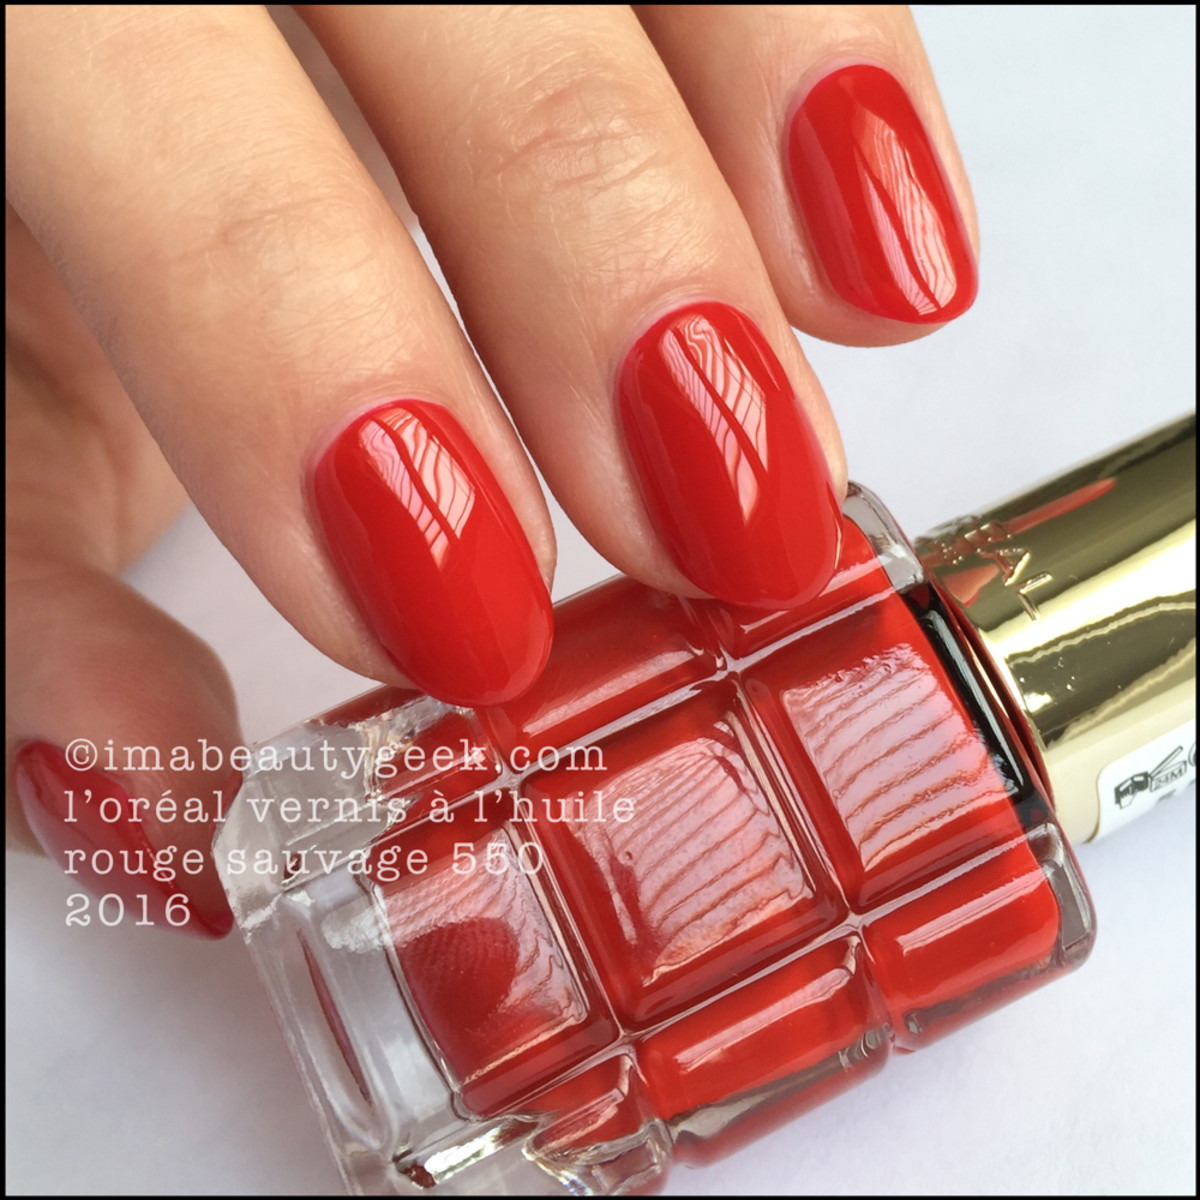 Loreal Vernis A Lhuile Nail Polish Swatches Rouge Sauvage 550